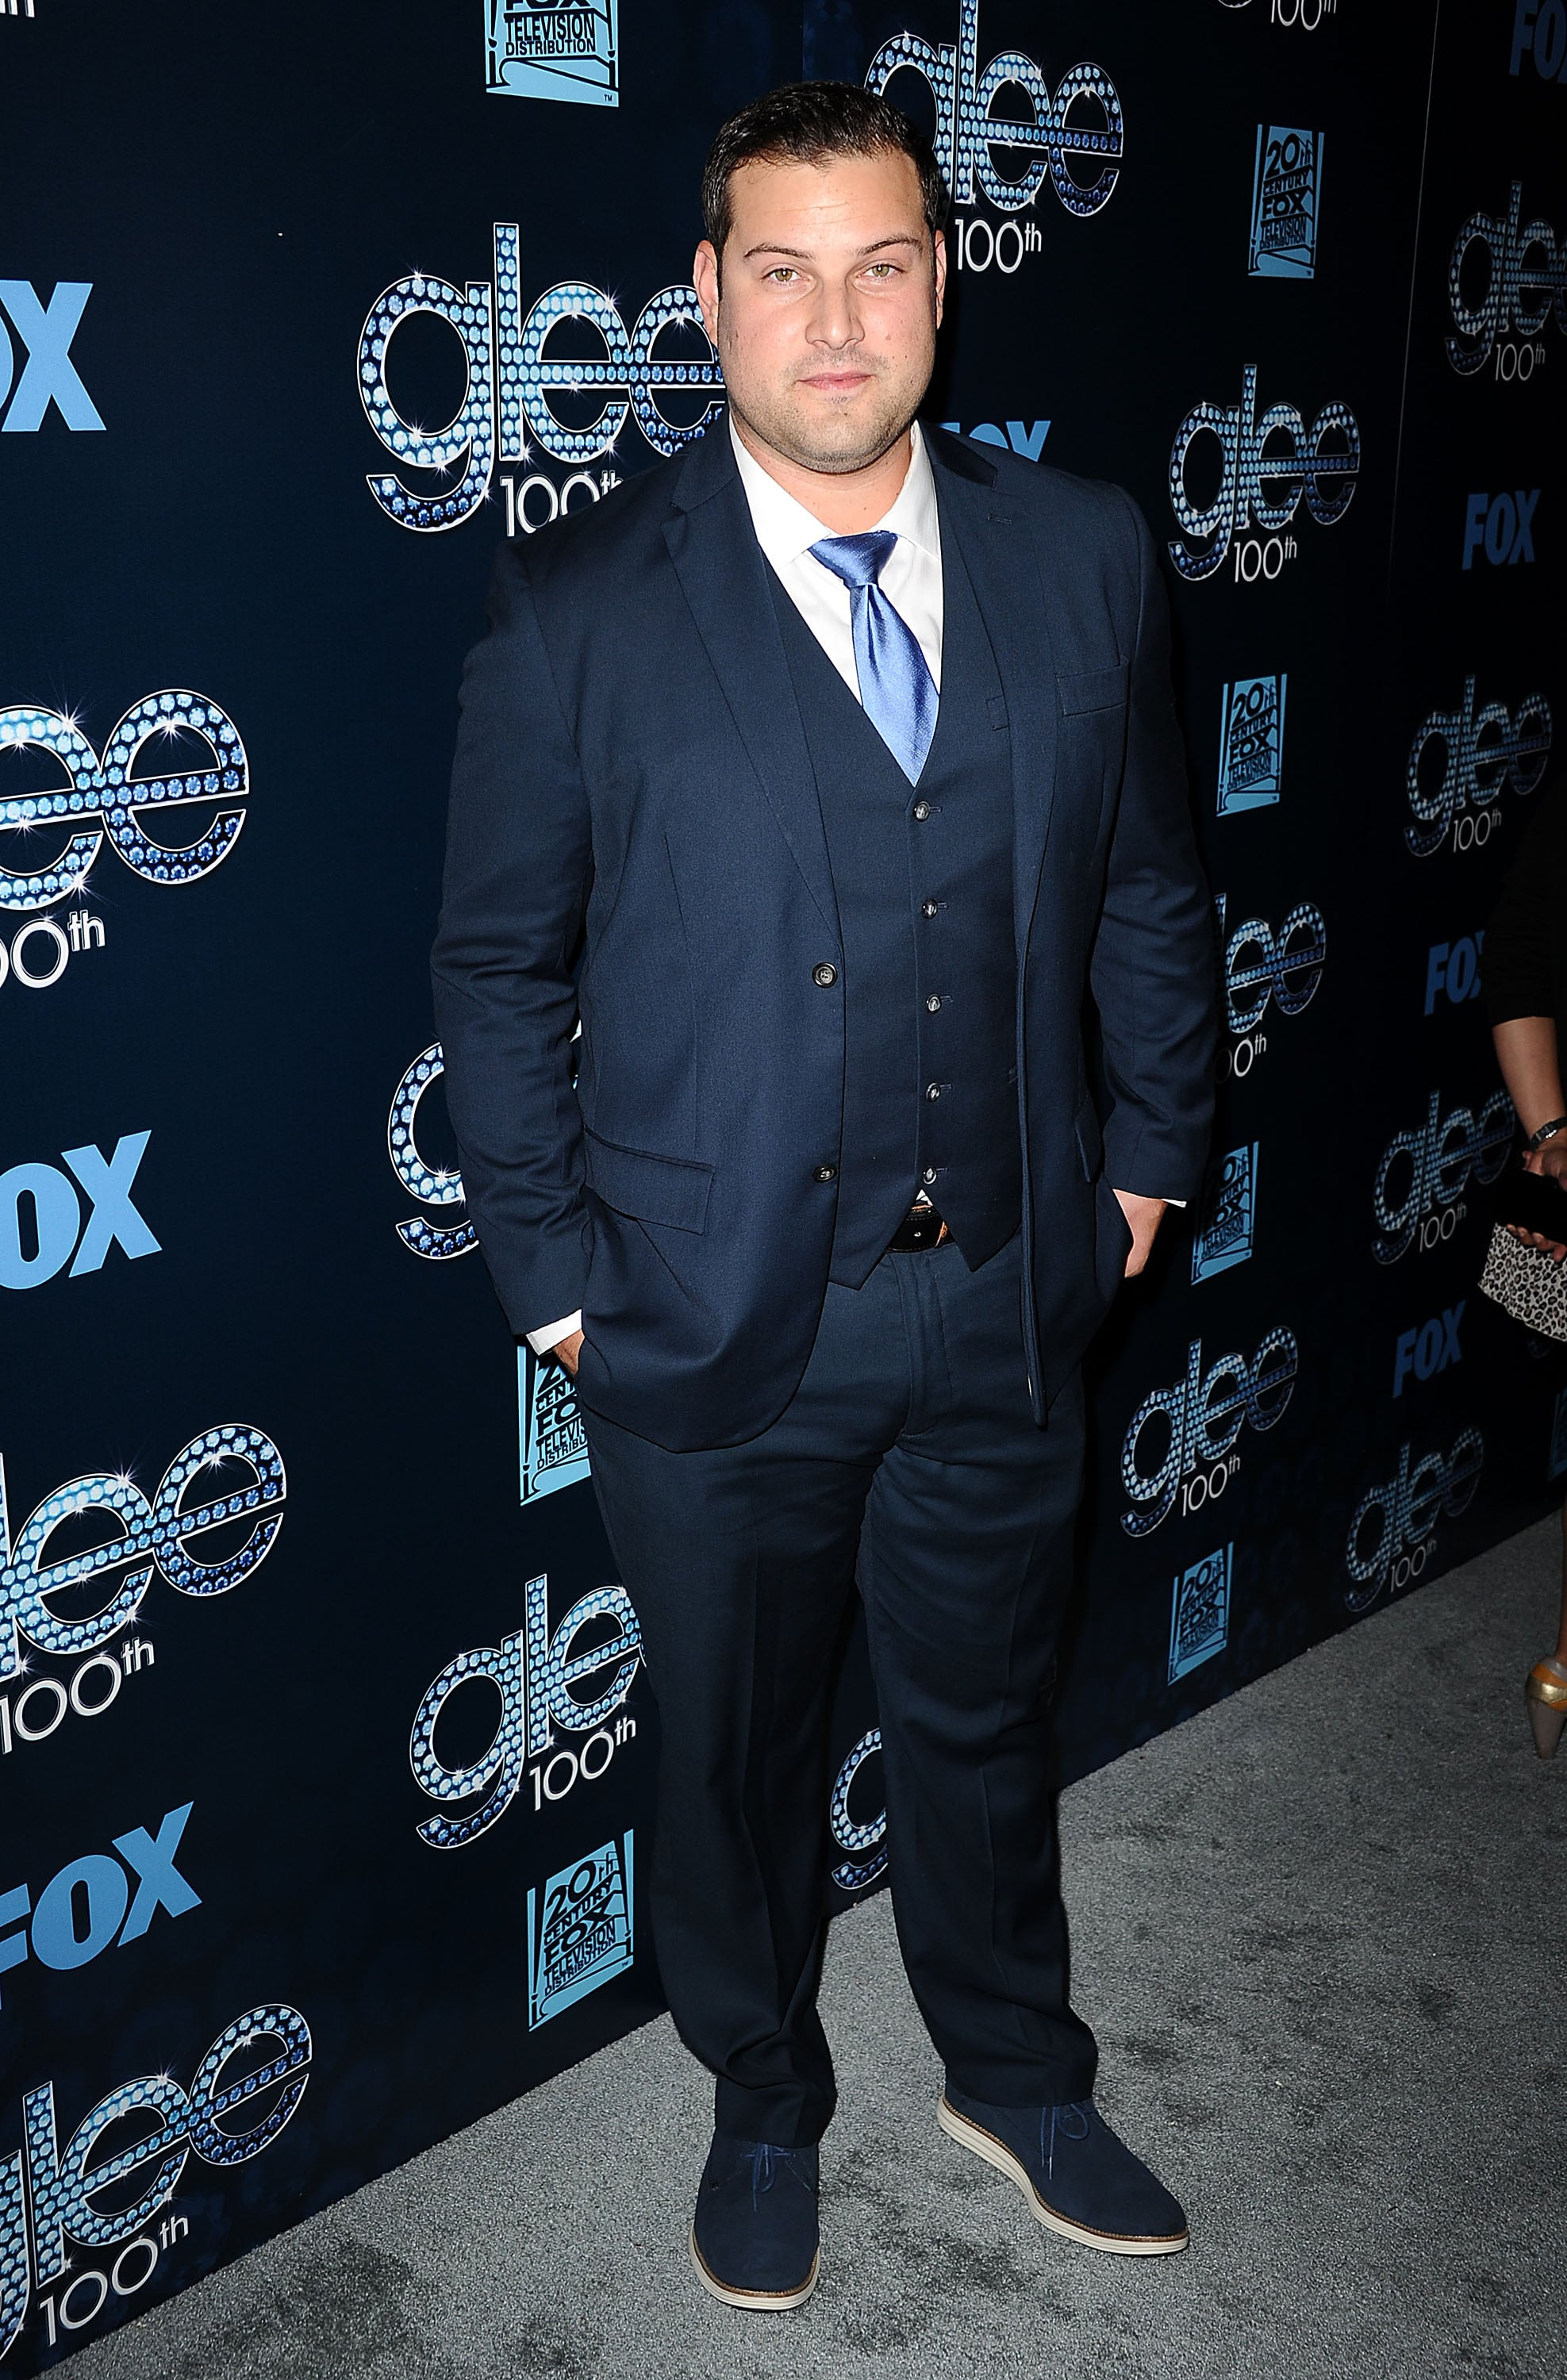 Max Adler made an appearance.